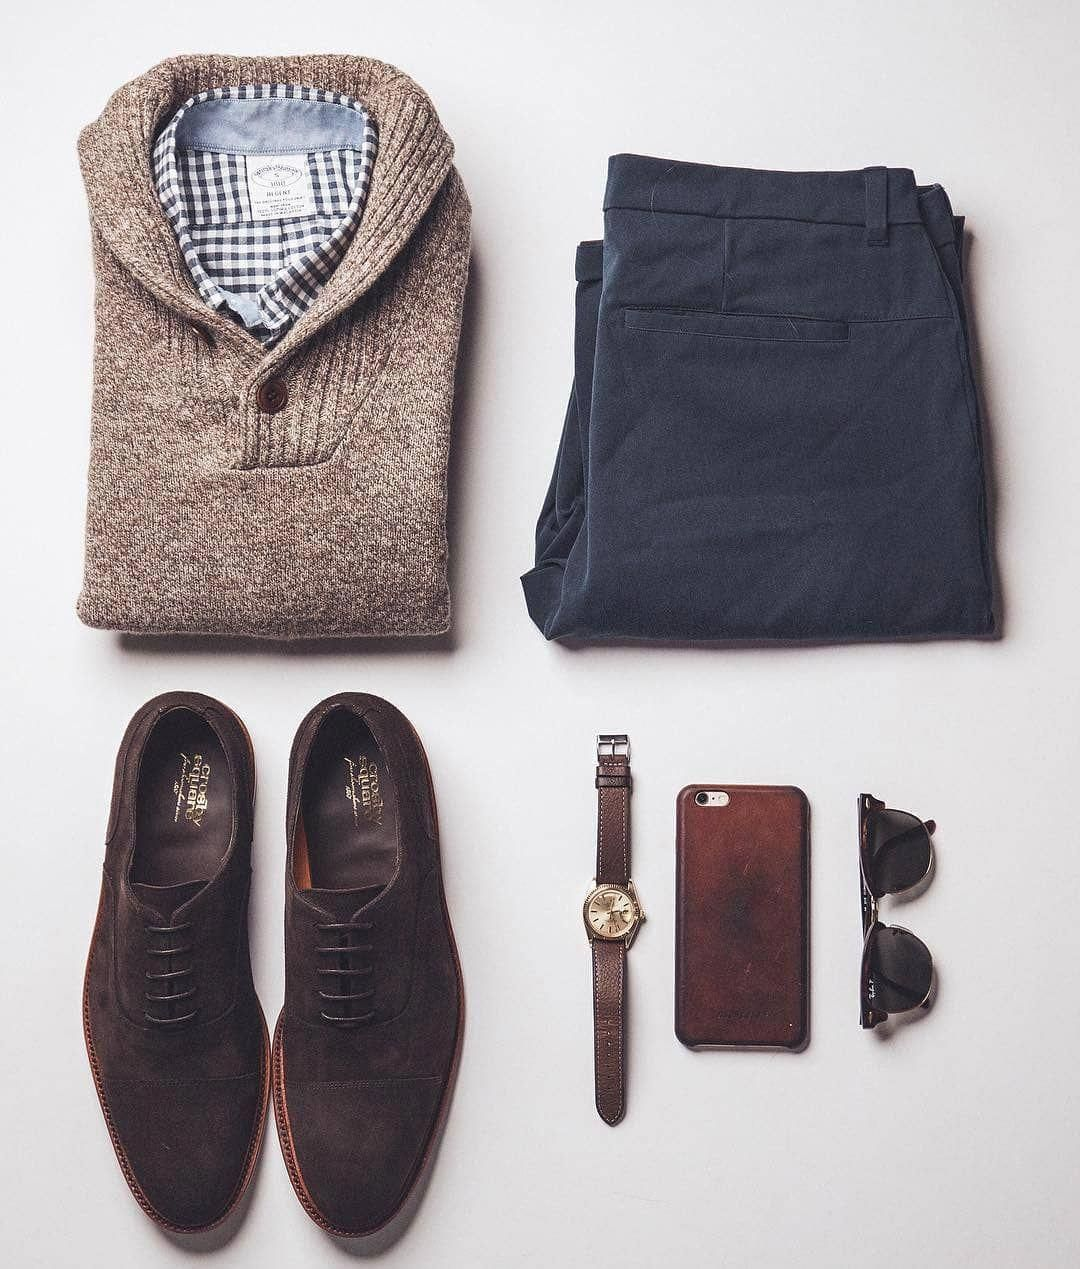 Men Fashion And Lifestyle On Instagram Outfit Of The Day Rate Outfit From 1 10 By Noahwilliamss Mens Fashion Trends Mens Fashion Mens Fashion Rugged